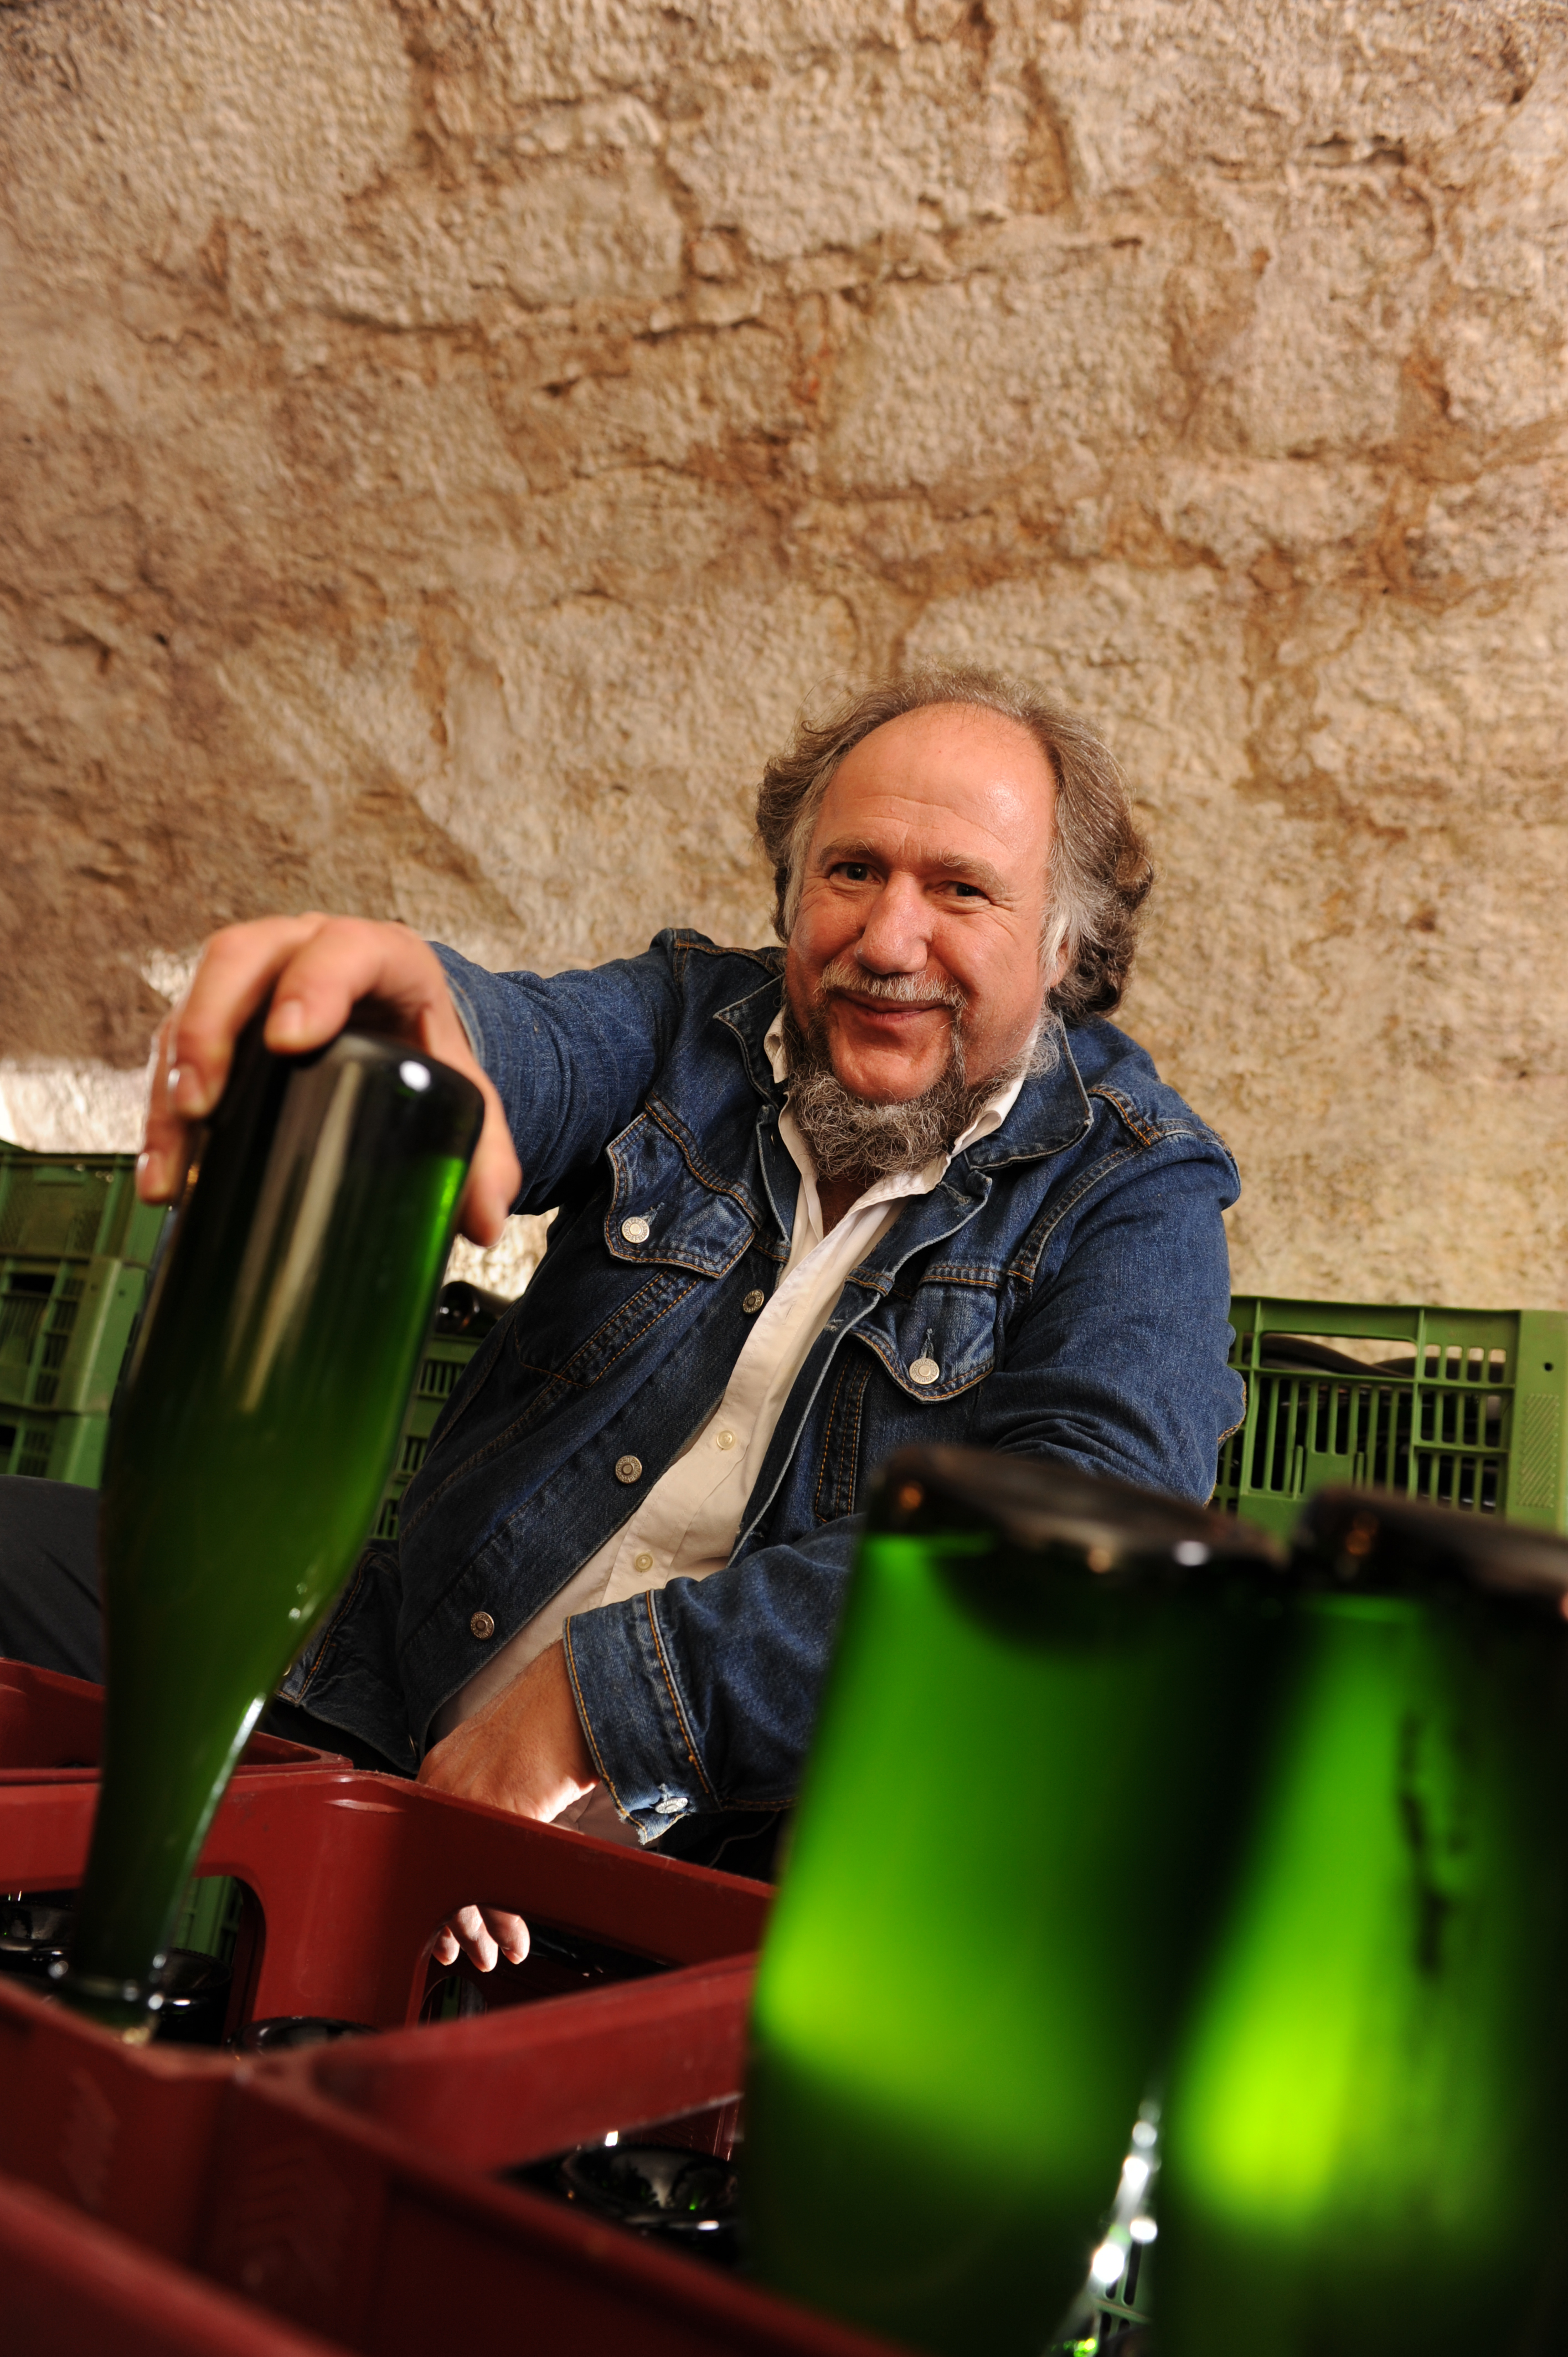 Bernulf Schlauch and his Hohenloher bloosom champagne